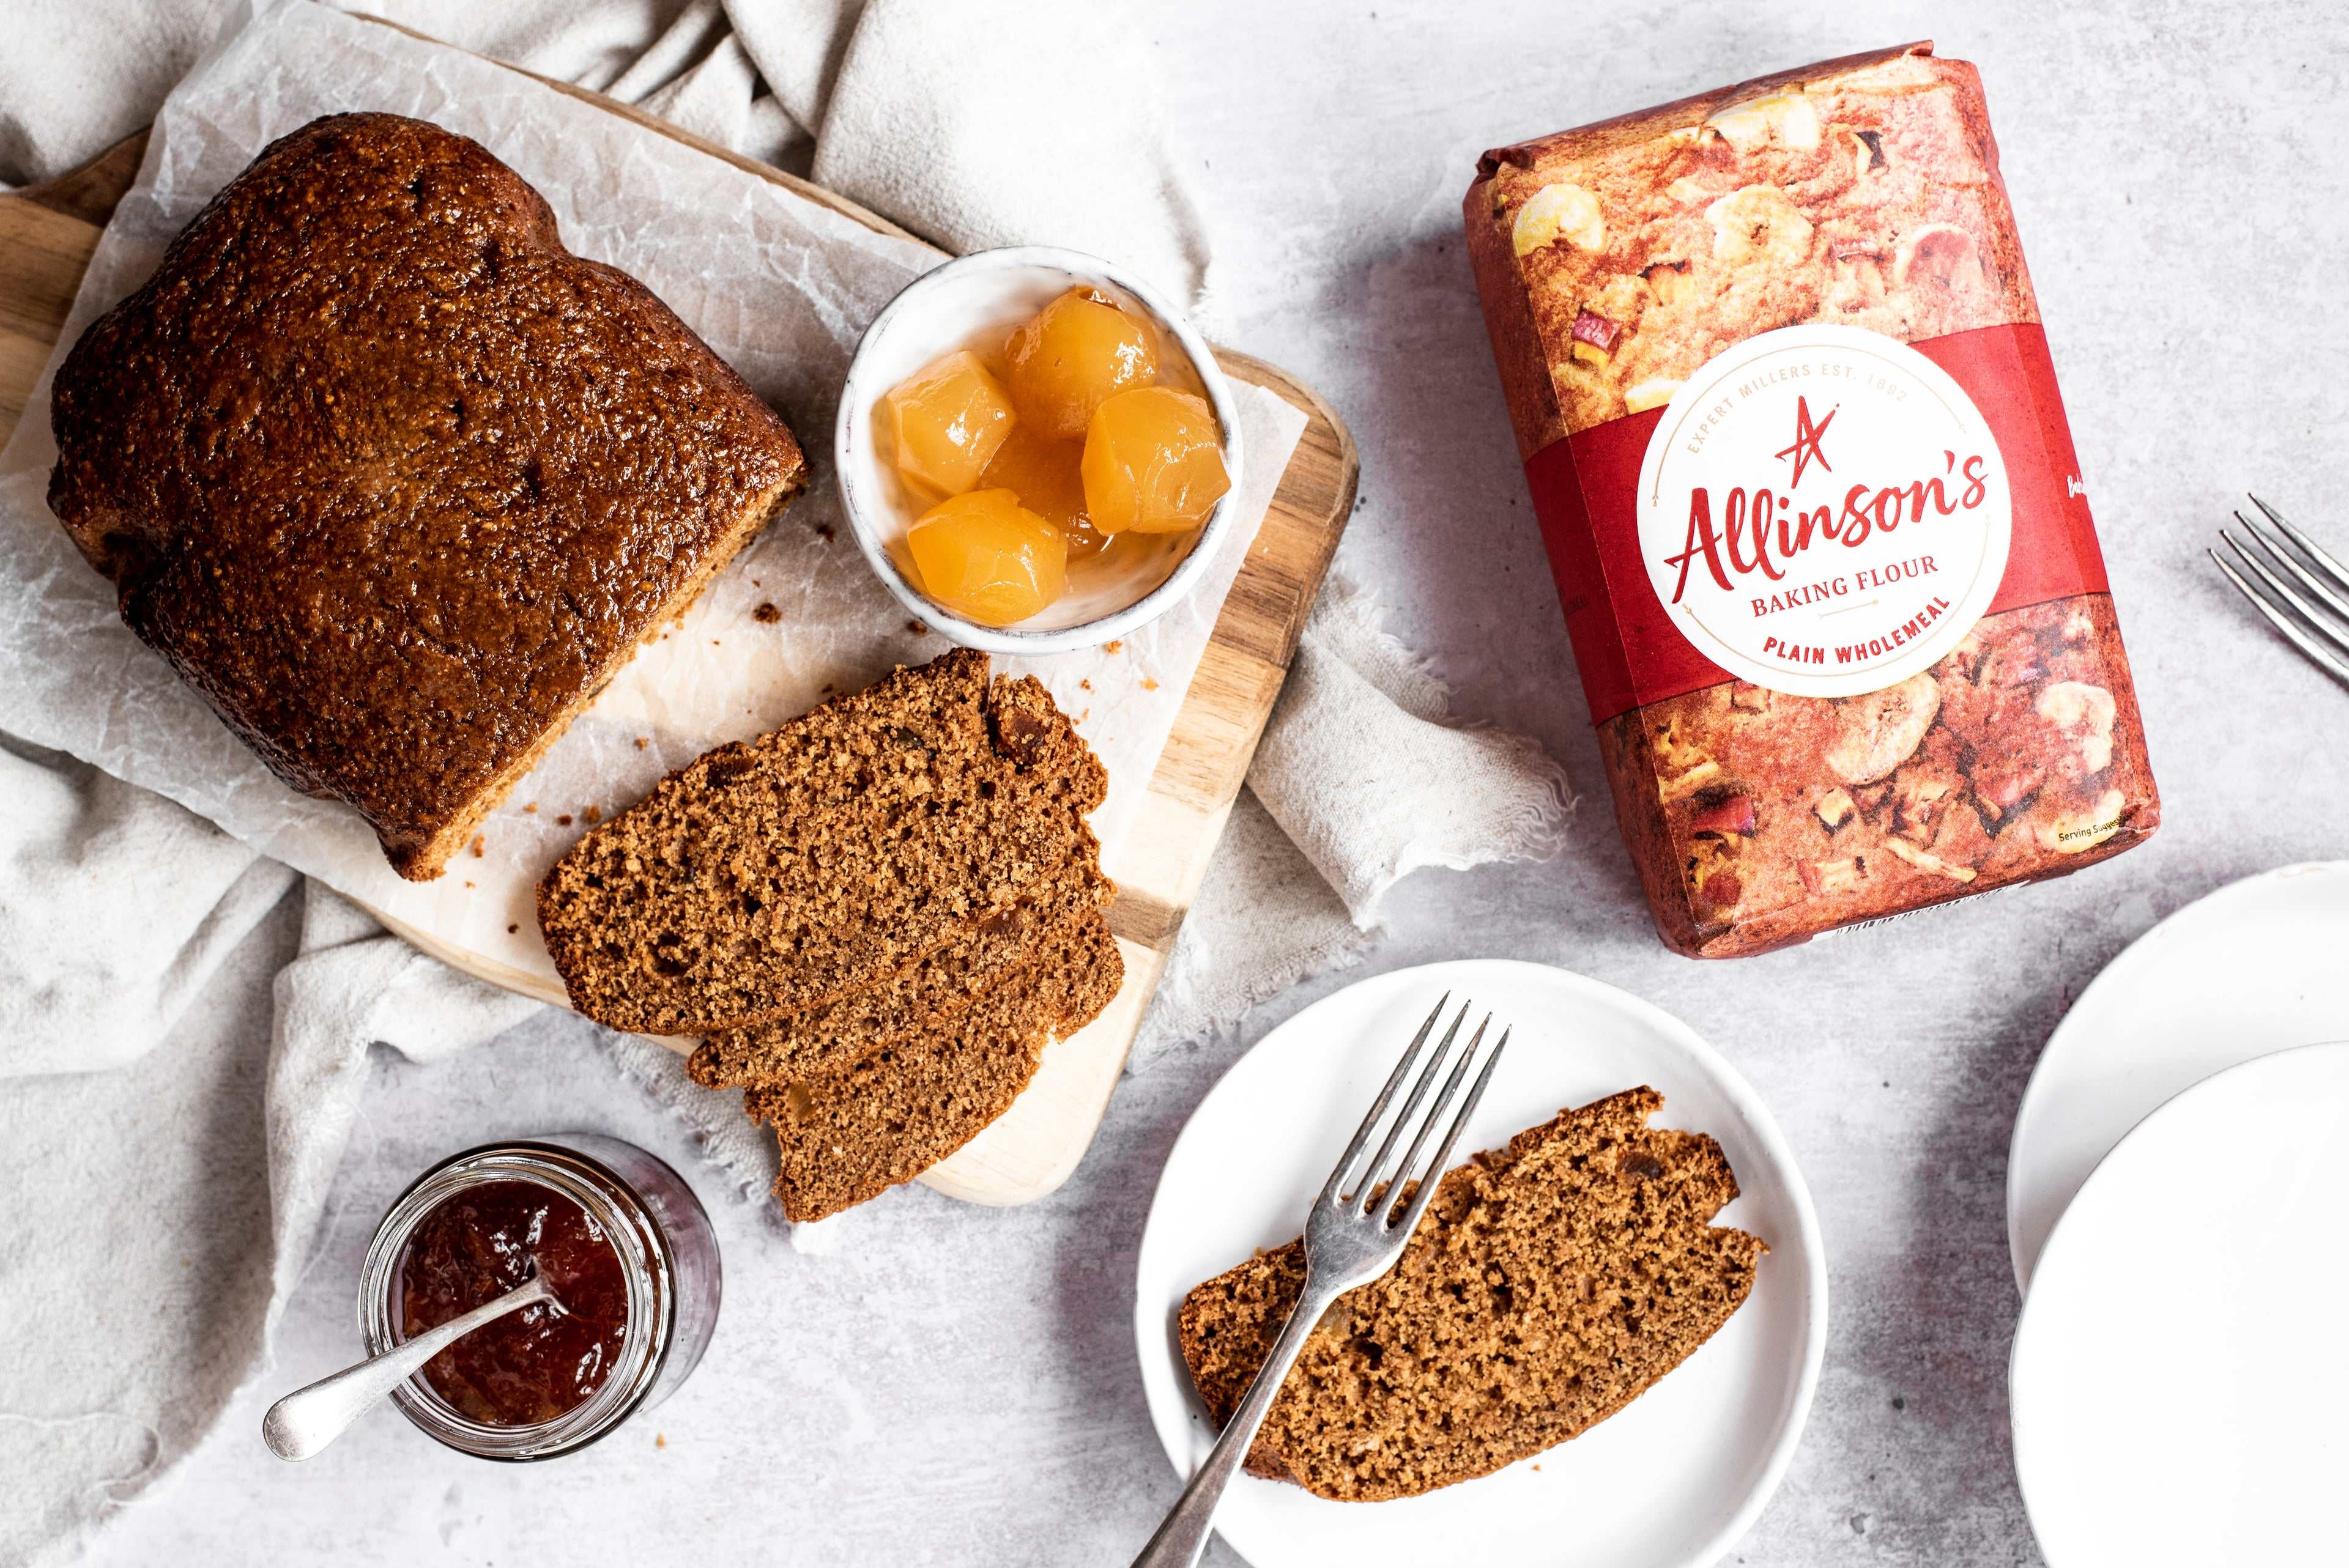 Overhead shot of gingerbread loaf with slices cut in front. Slice of cake on plate with fork. Bowl of ginger. Marmalade jar. Flour pack